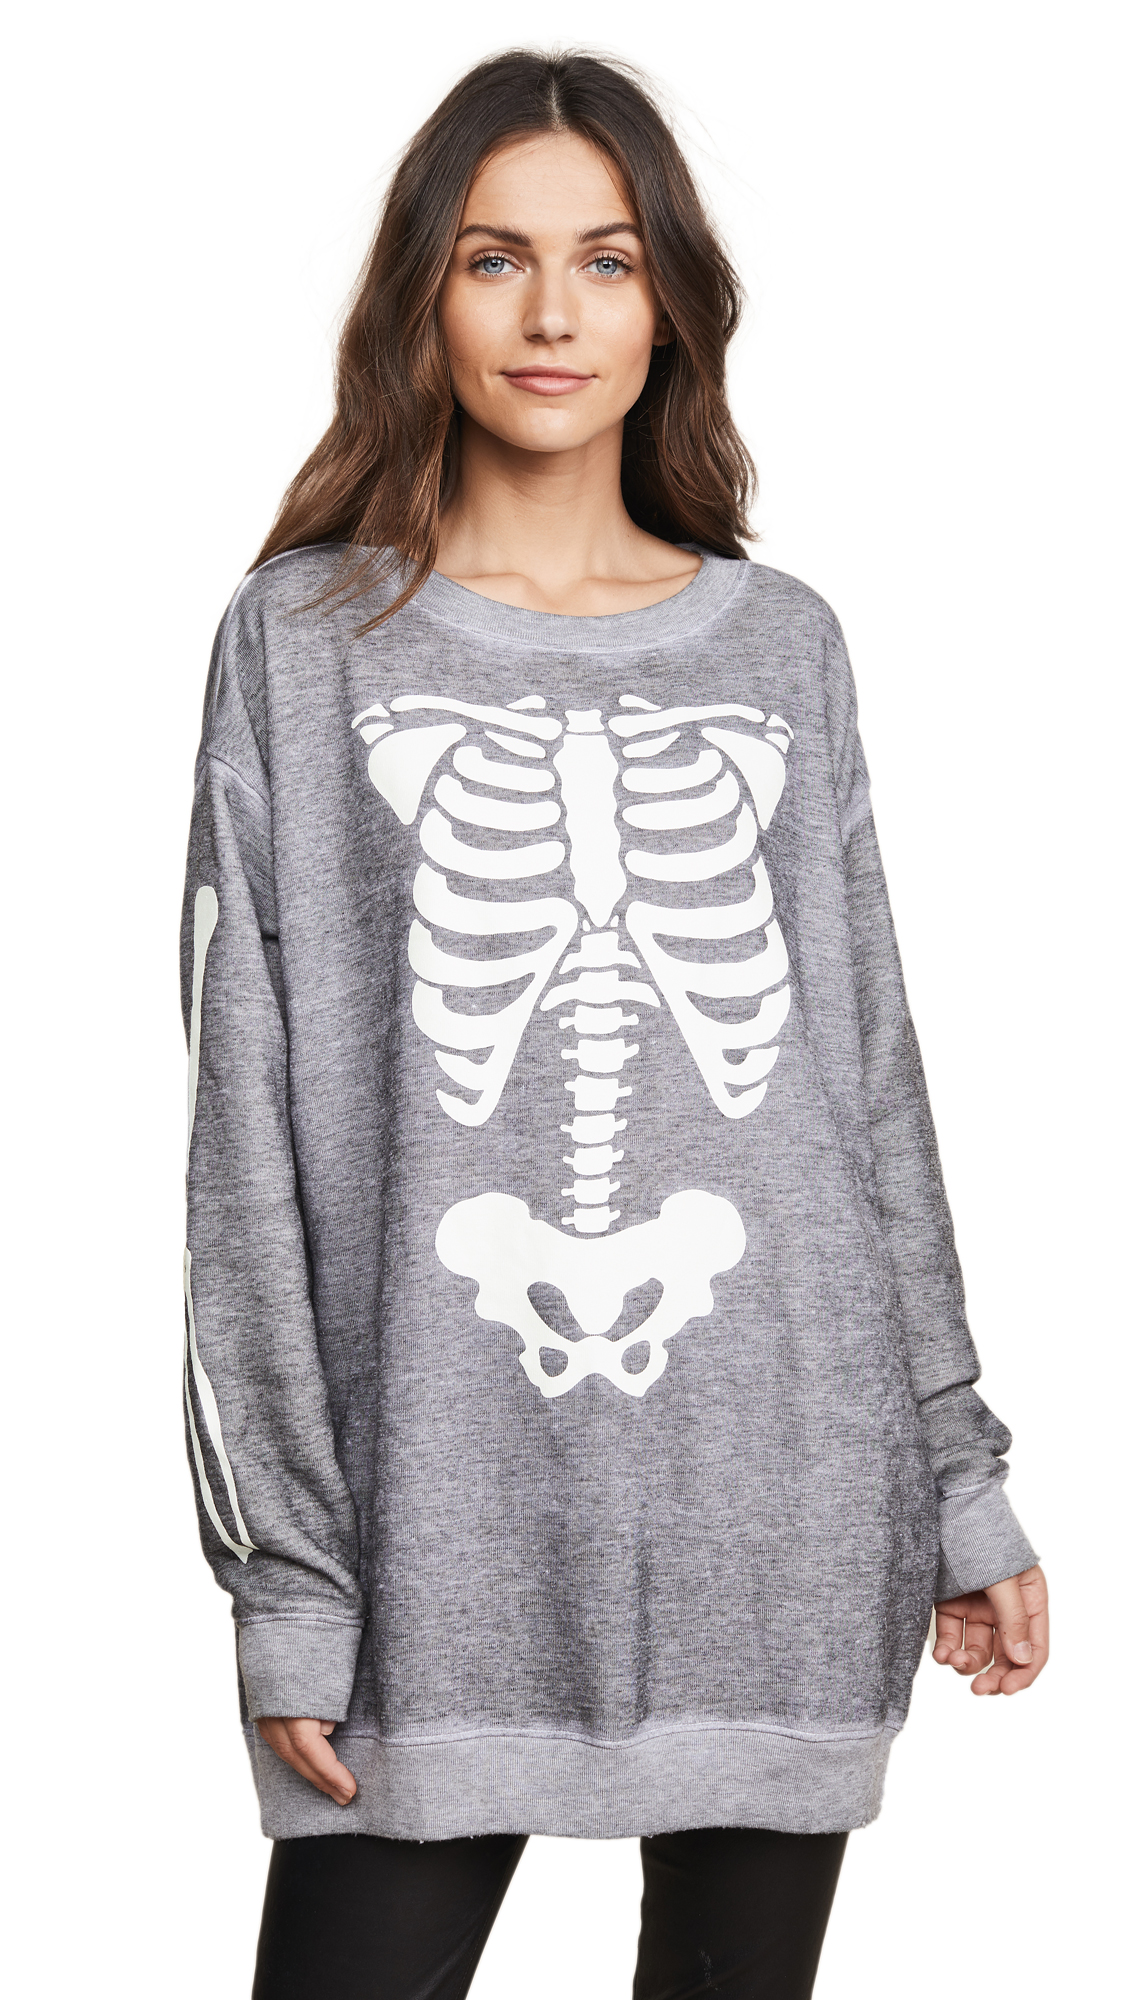 Wildfox X Ray Vision Sweatshirt In Heather